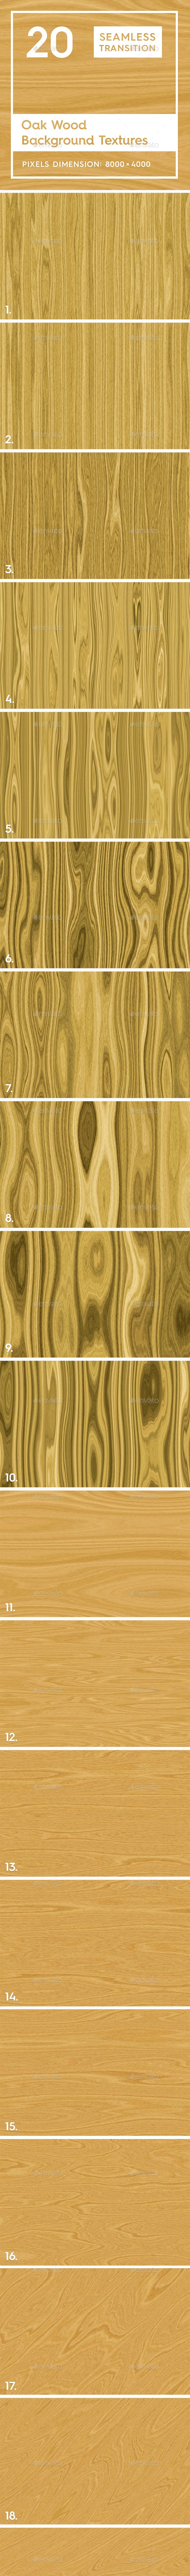 20 Oak Wood Background Textures - 3DOcean Item for Sale